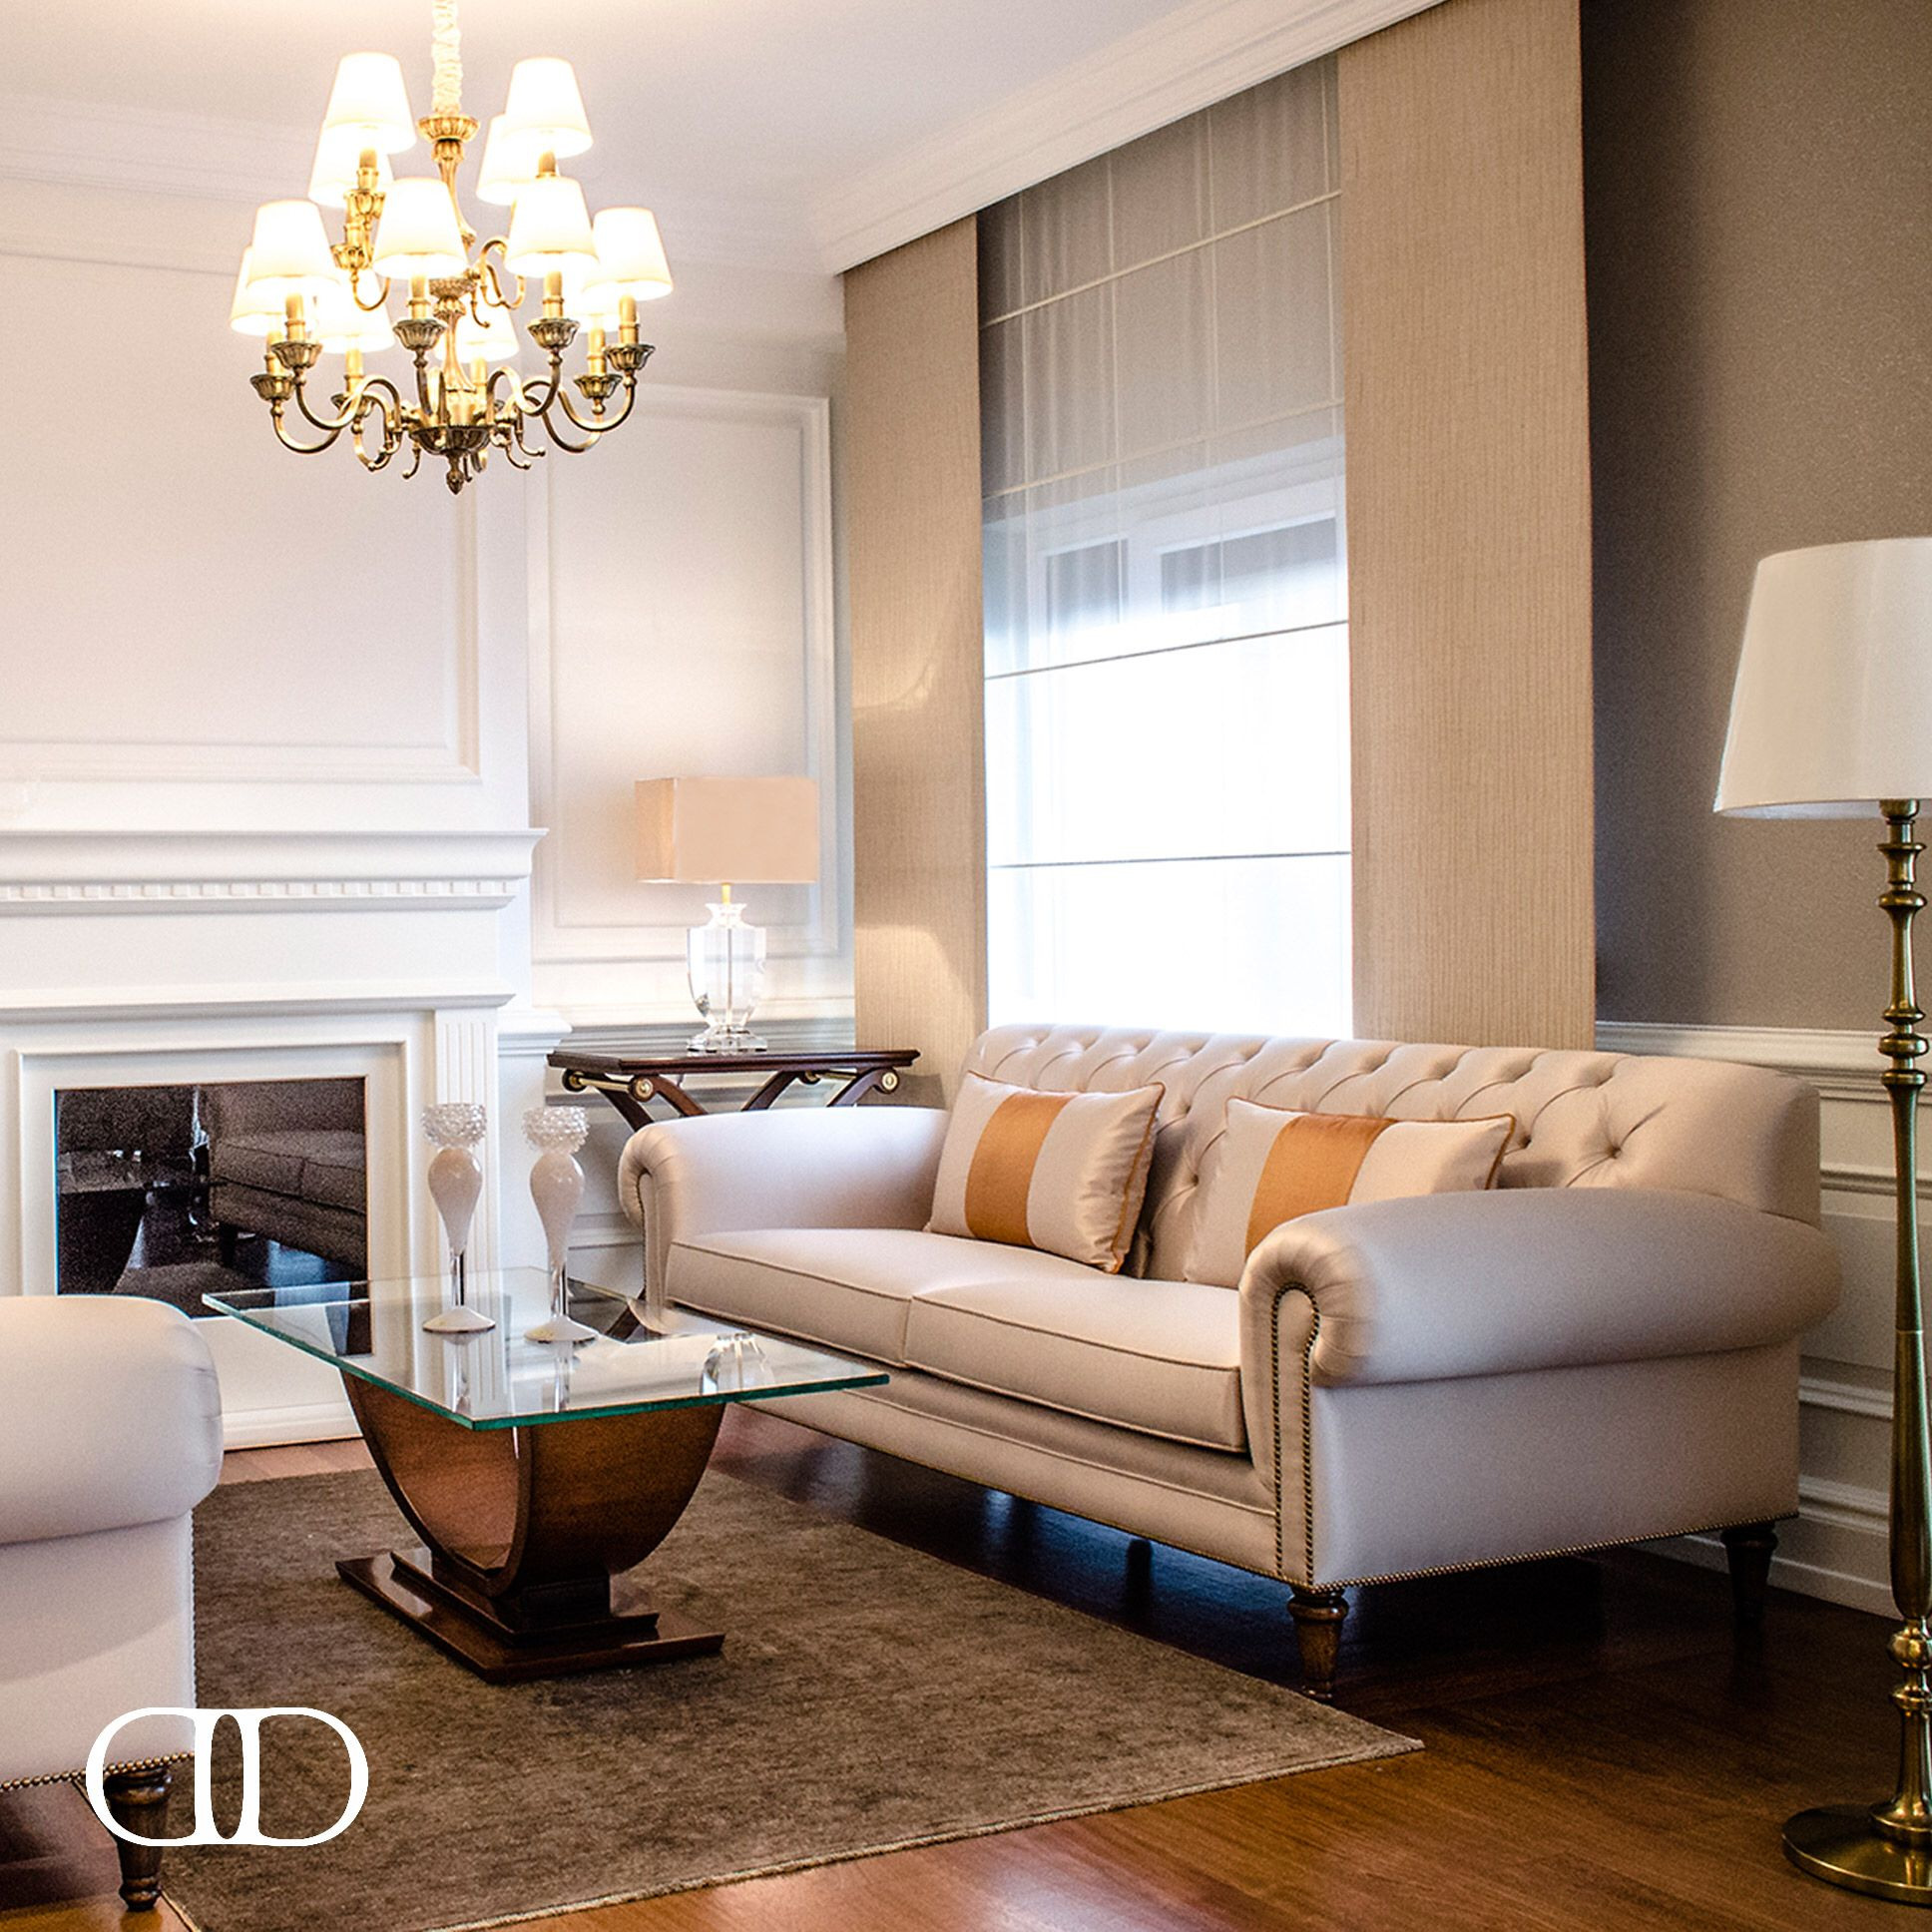 Always Chic Dorya s Dorian Sofa Veneto Cocktail Table and Delaney